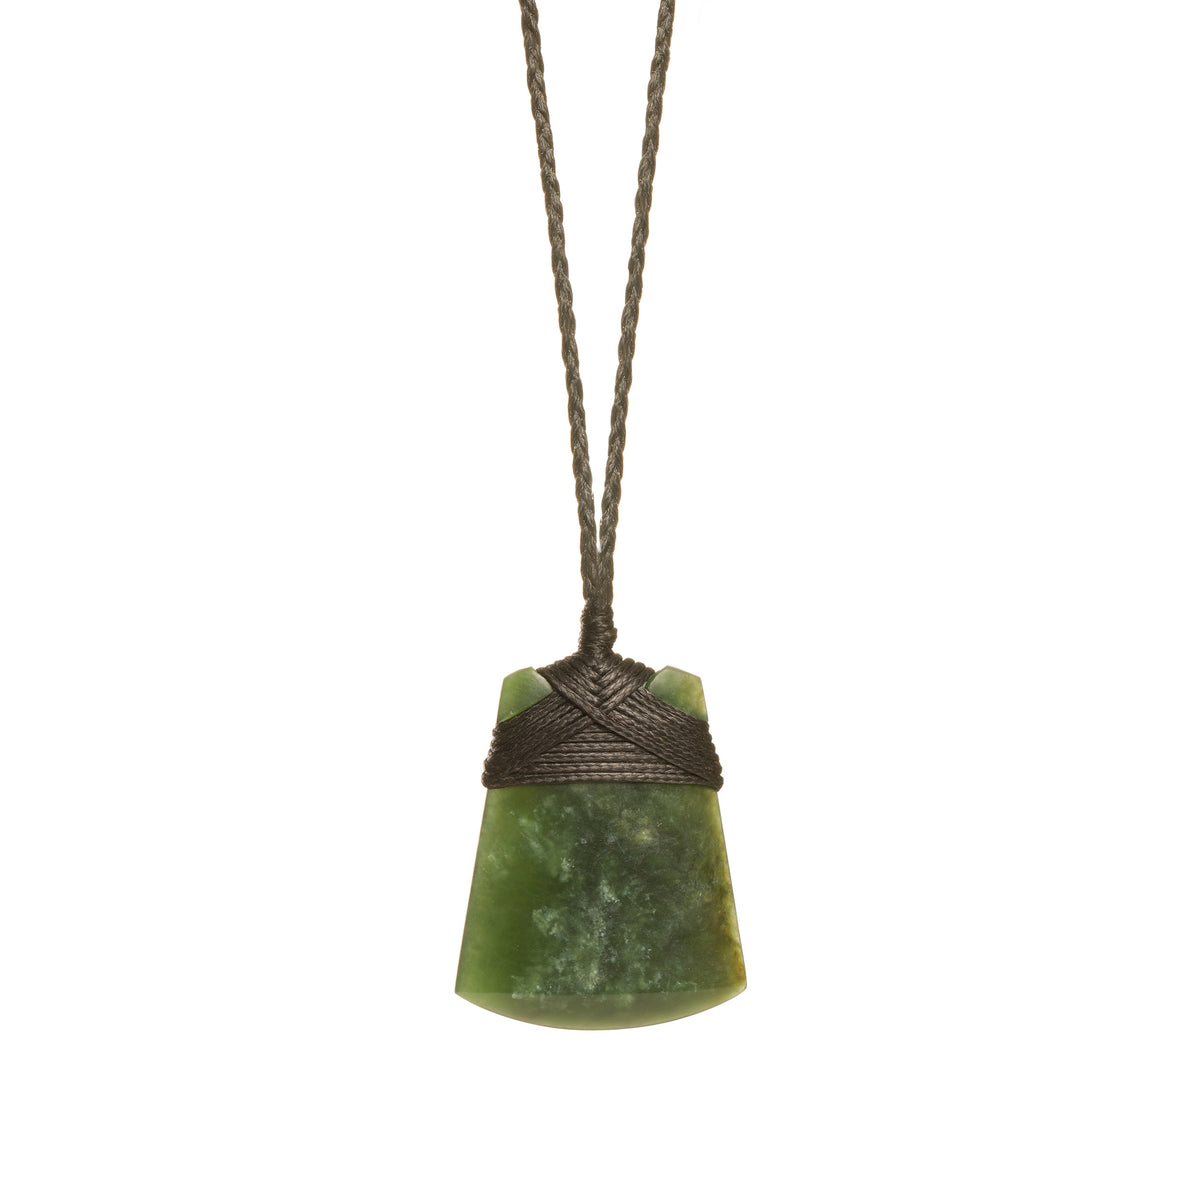 New Zealand Pounamu // JSTO198P-4 / 35mm x 30mm